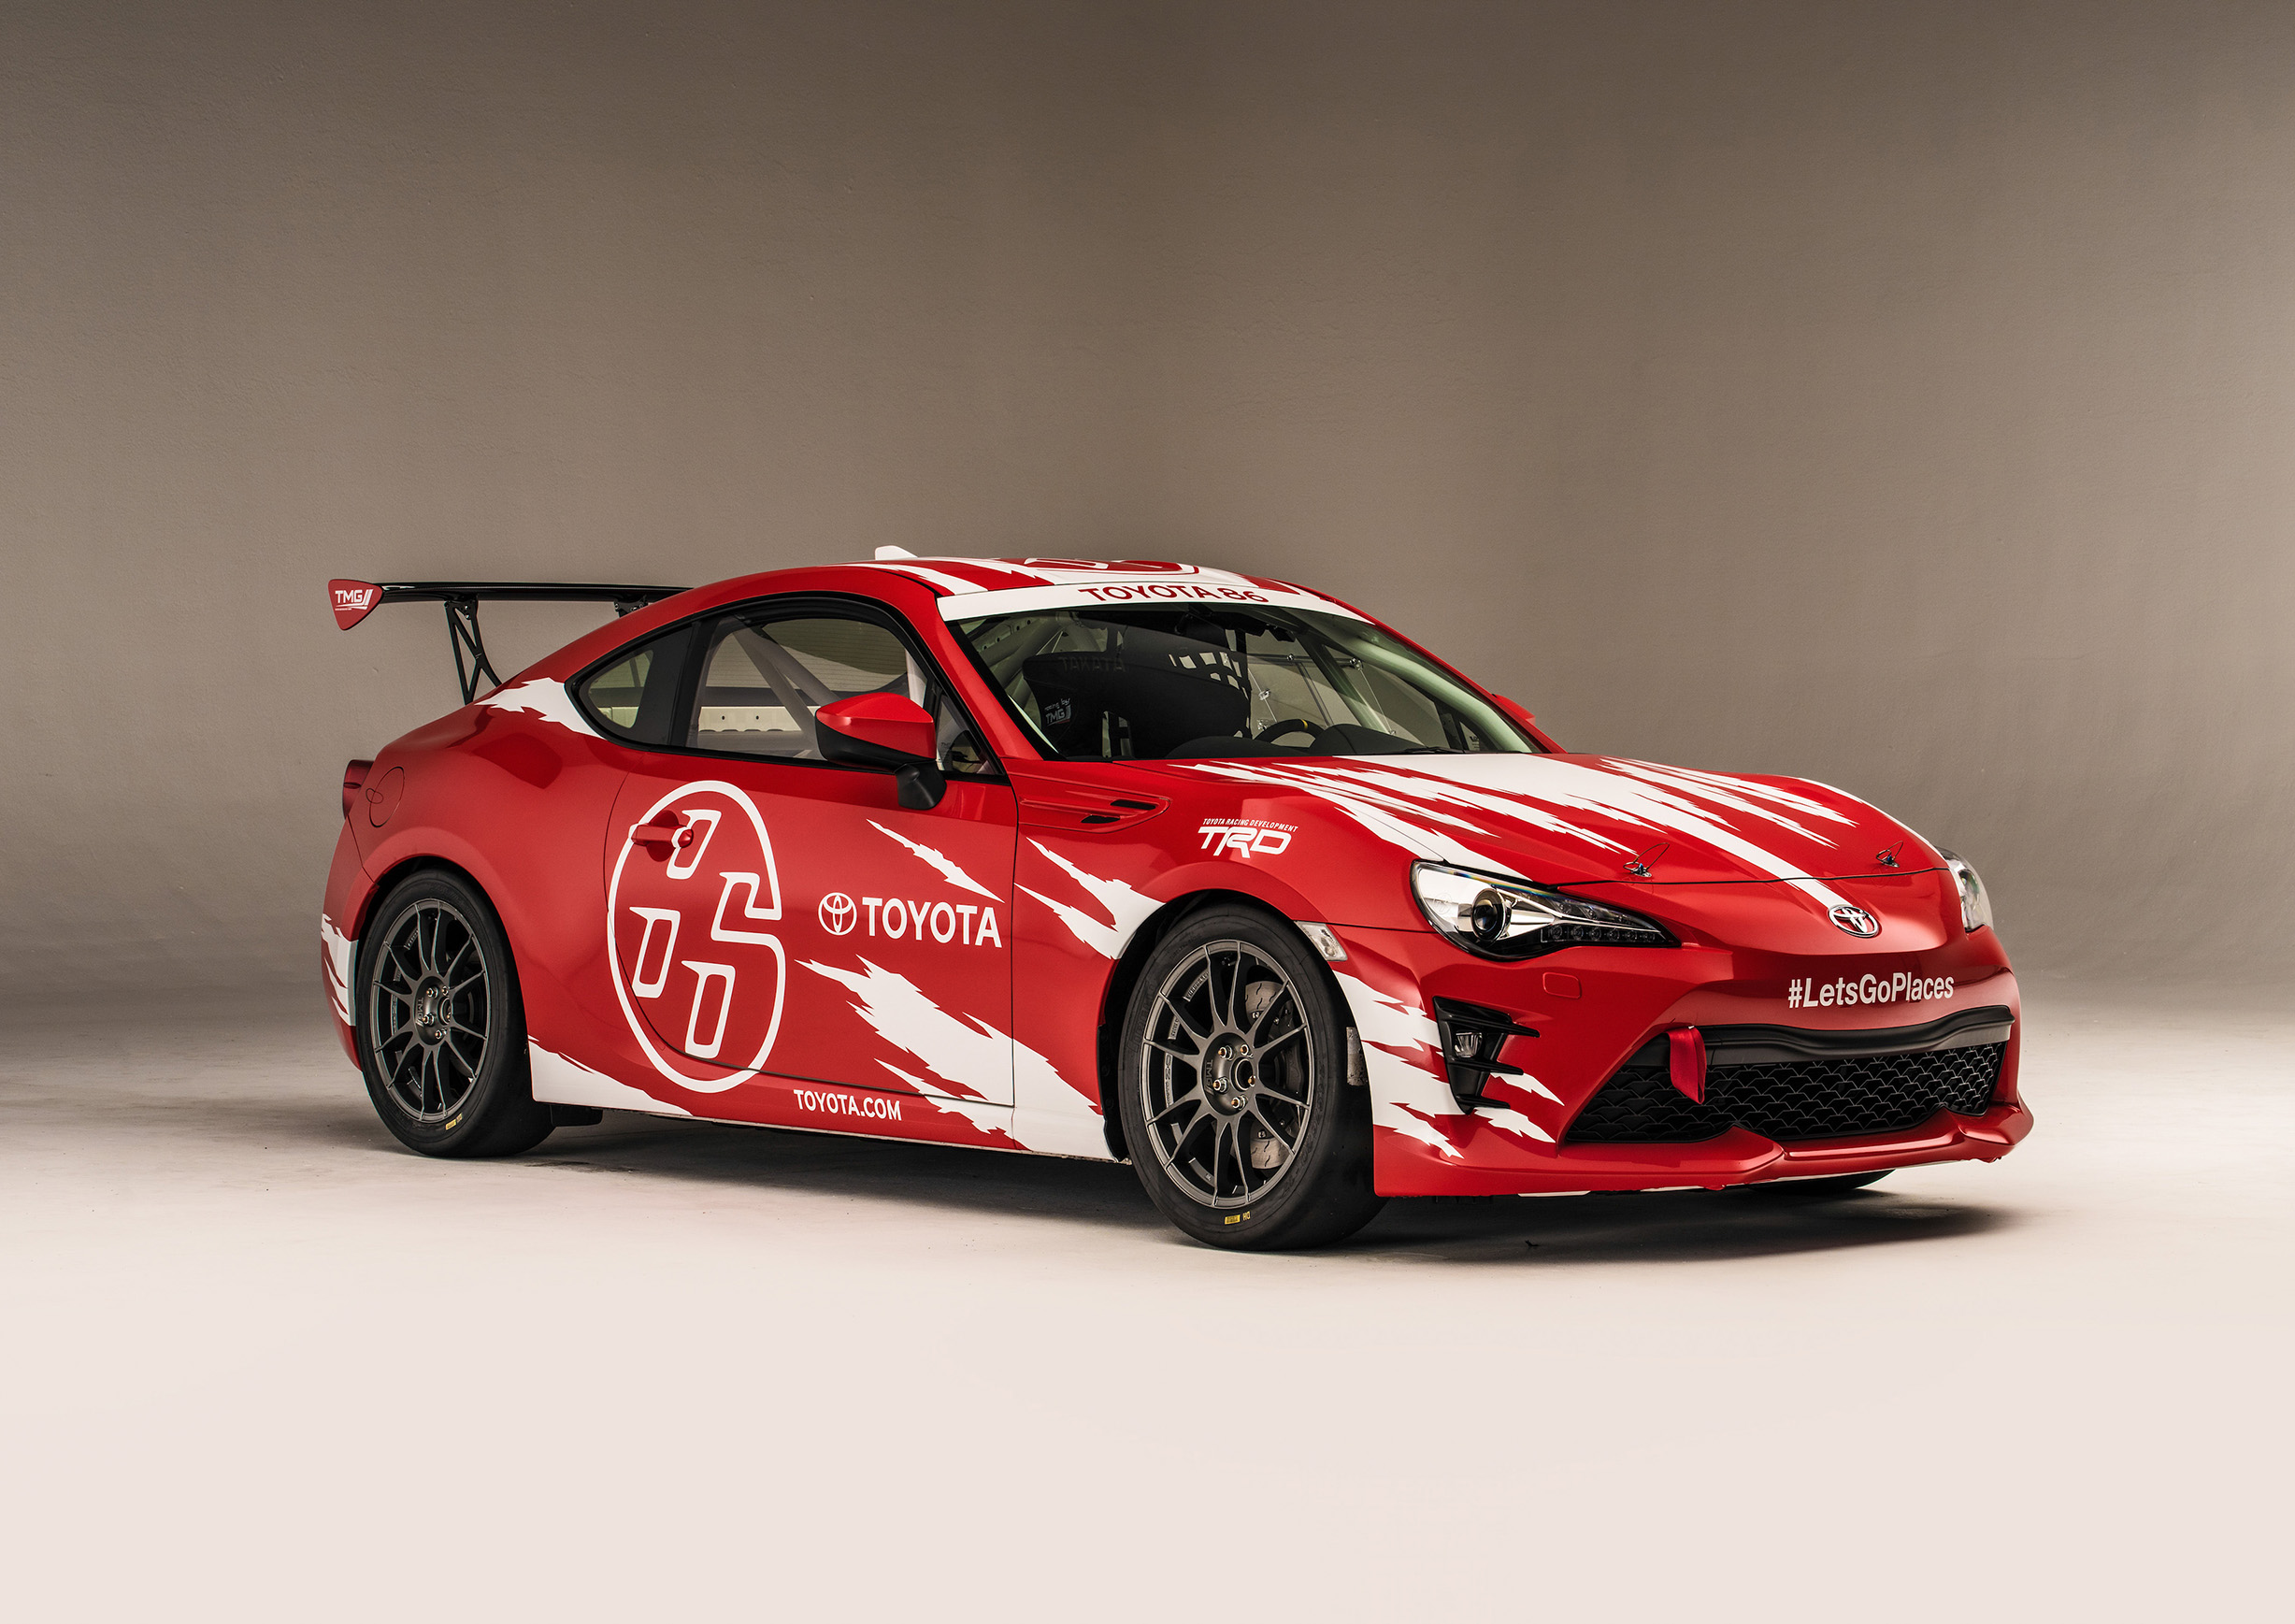 Toyota 86 north american racing debut in pirelli world for Toyota motor north america